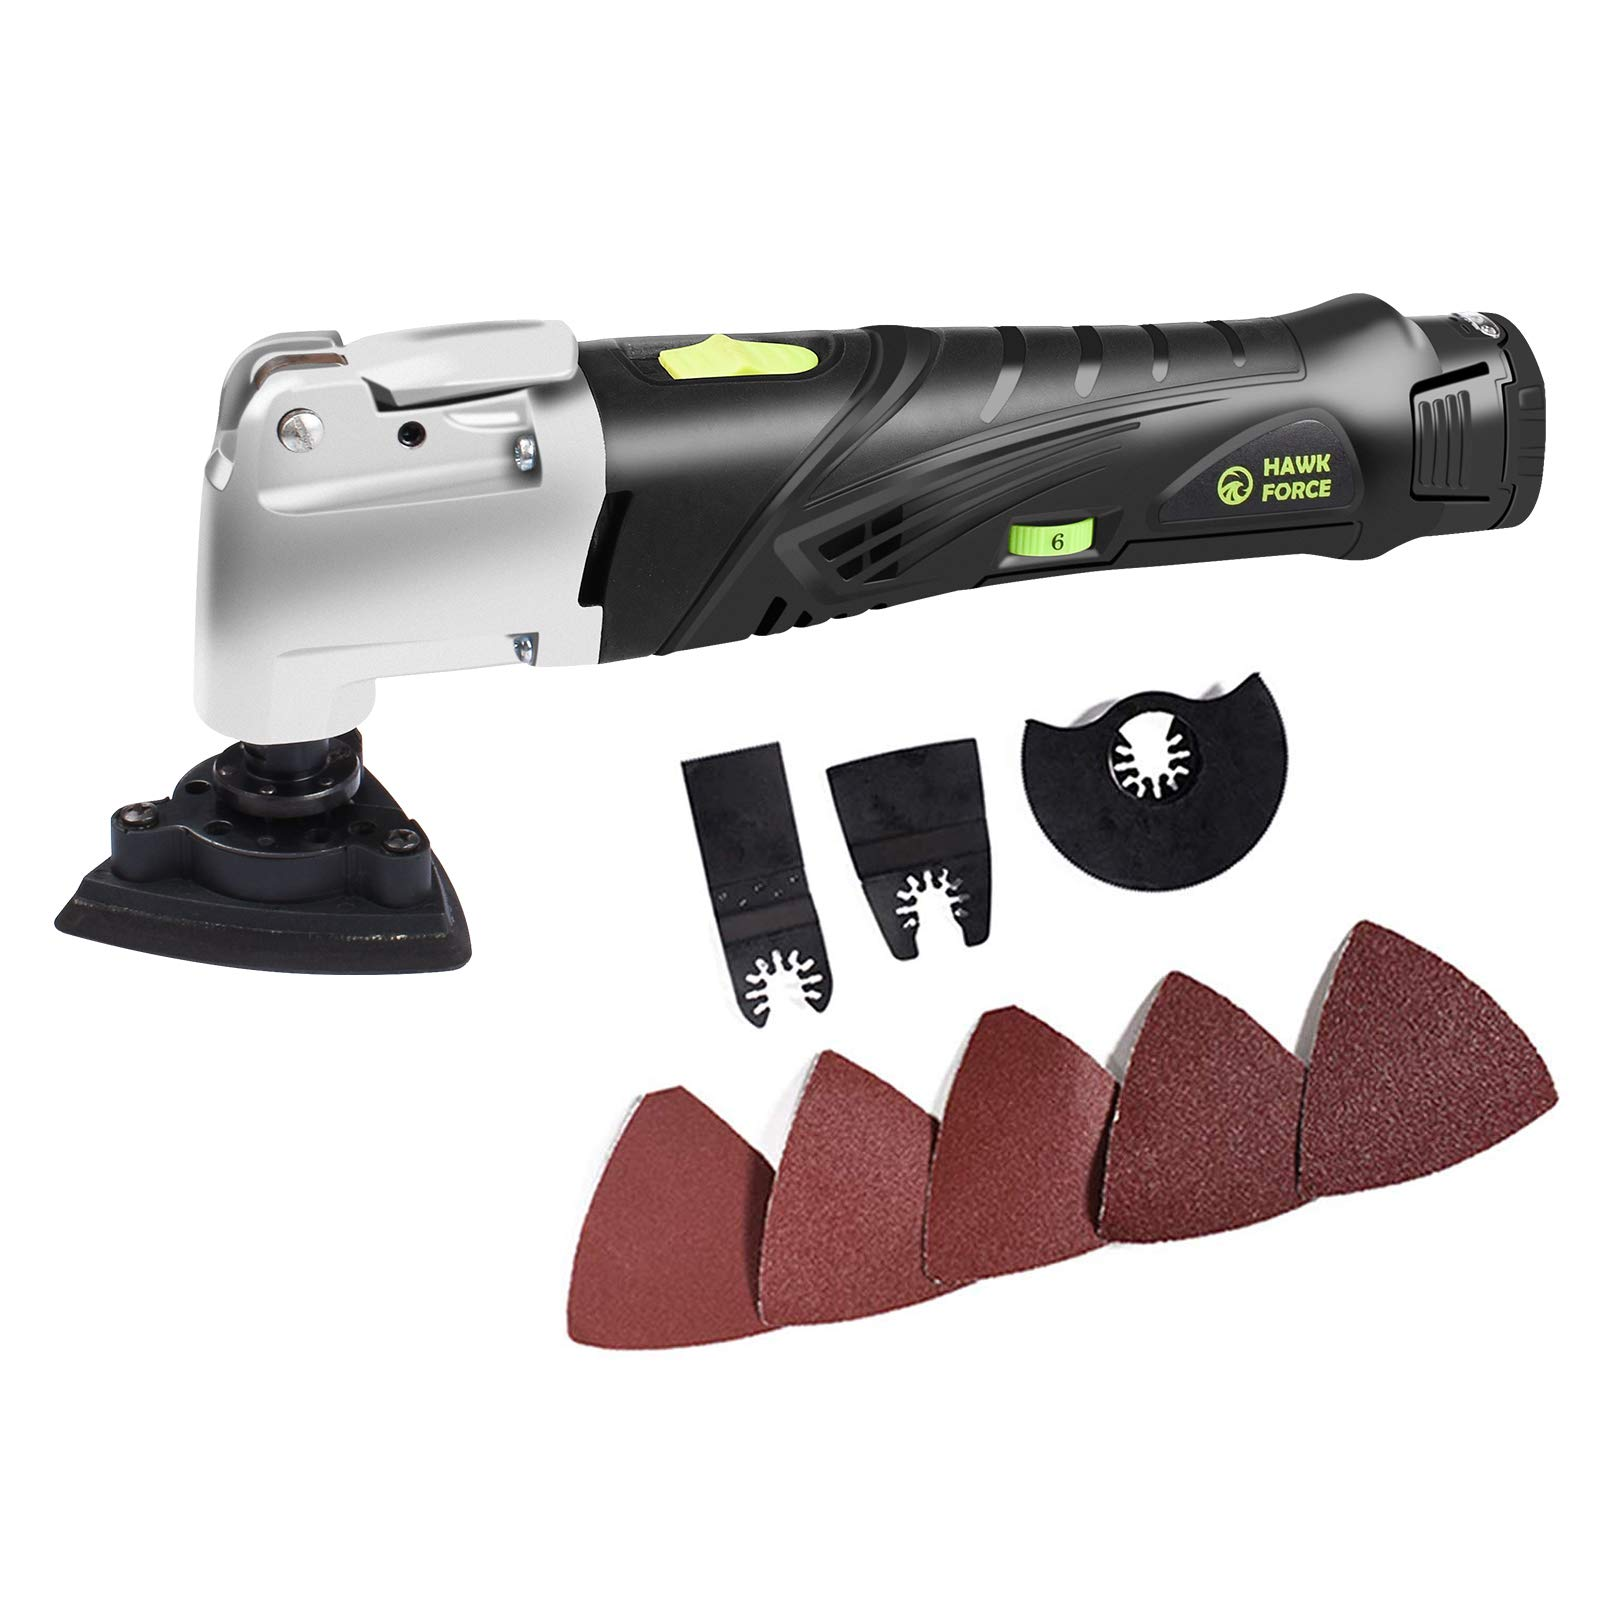 HAWKFORCE 12V MAX Cordless Multi-Purpose Oscillating Tool with 6 Variable Speeds, Keyless Tool Changing and 9pcs Accessories Set Multi Tool Kit for Grout Removing, Scraping, Cutting,Sanding